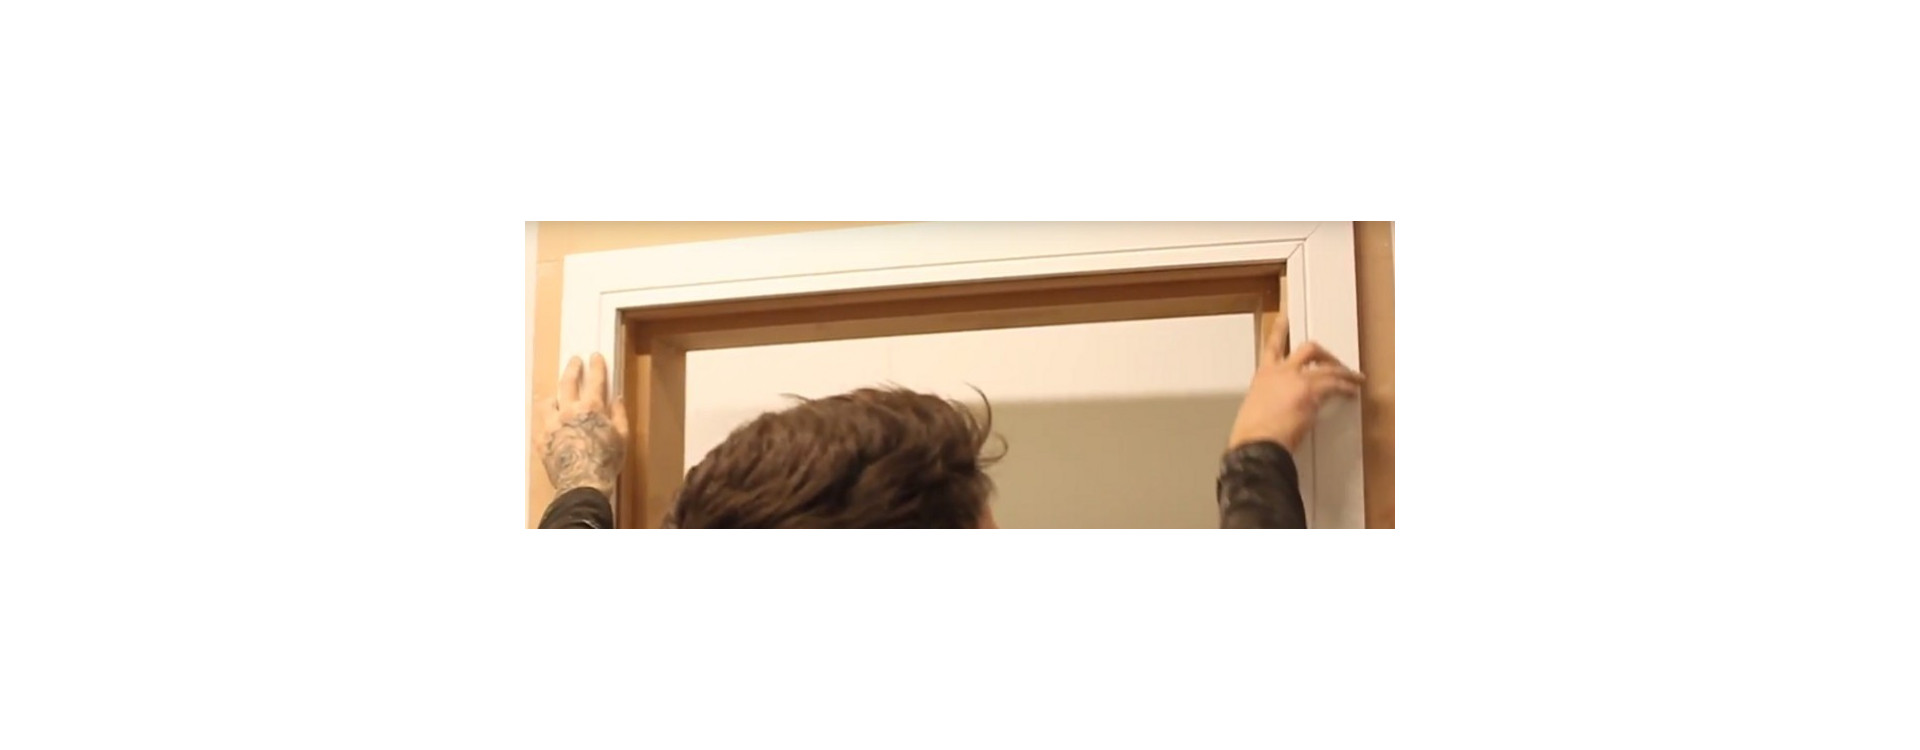 How to Fit Architrave When the Door Is Not Perfectly Square